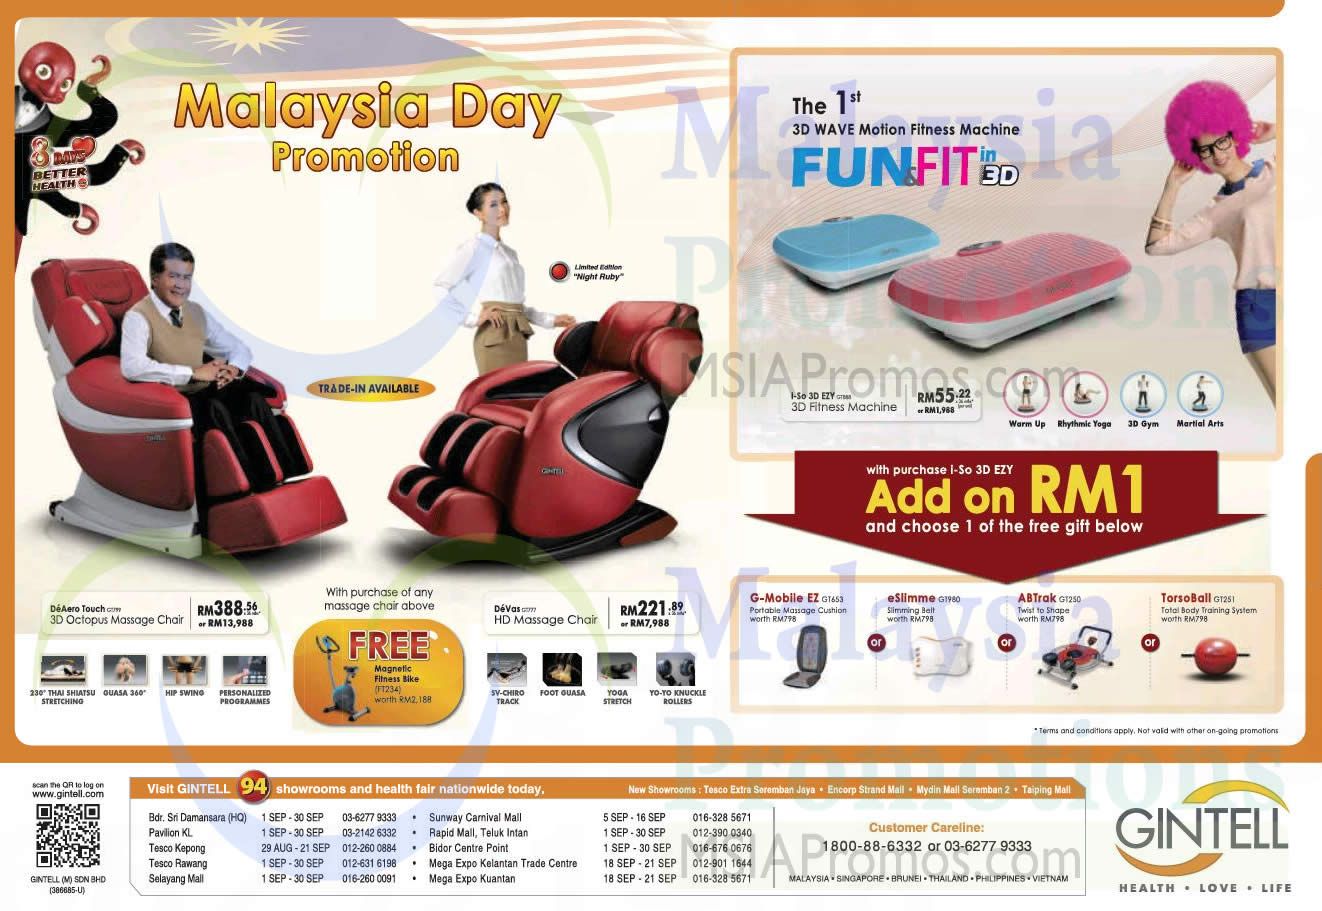 Gintell 16 sep 2014 gintell malaysia day massage chairs for 22 thai cuisine maiden lane